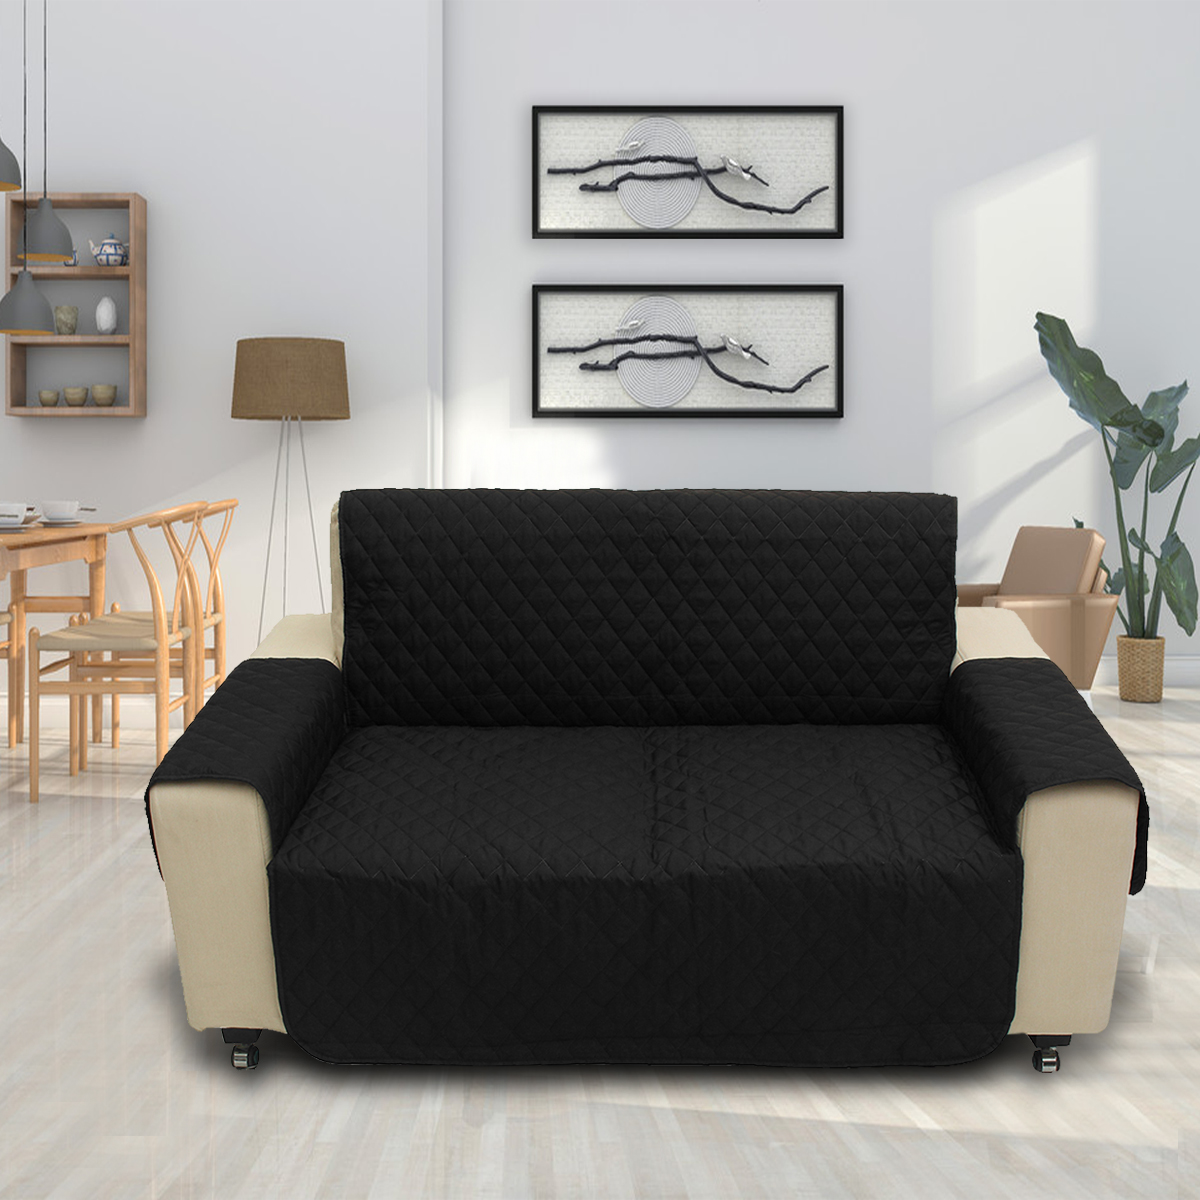 Black Pet Sofa Couch Furniture Protective Cover Removable W/Strap Waterproof 2 Seat